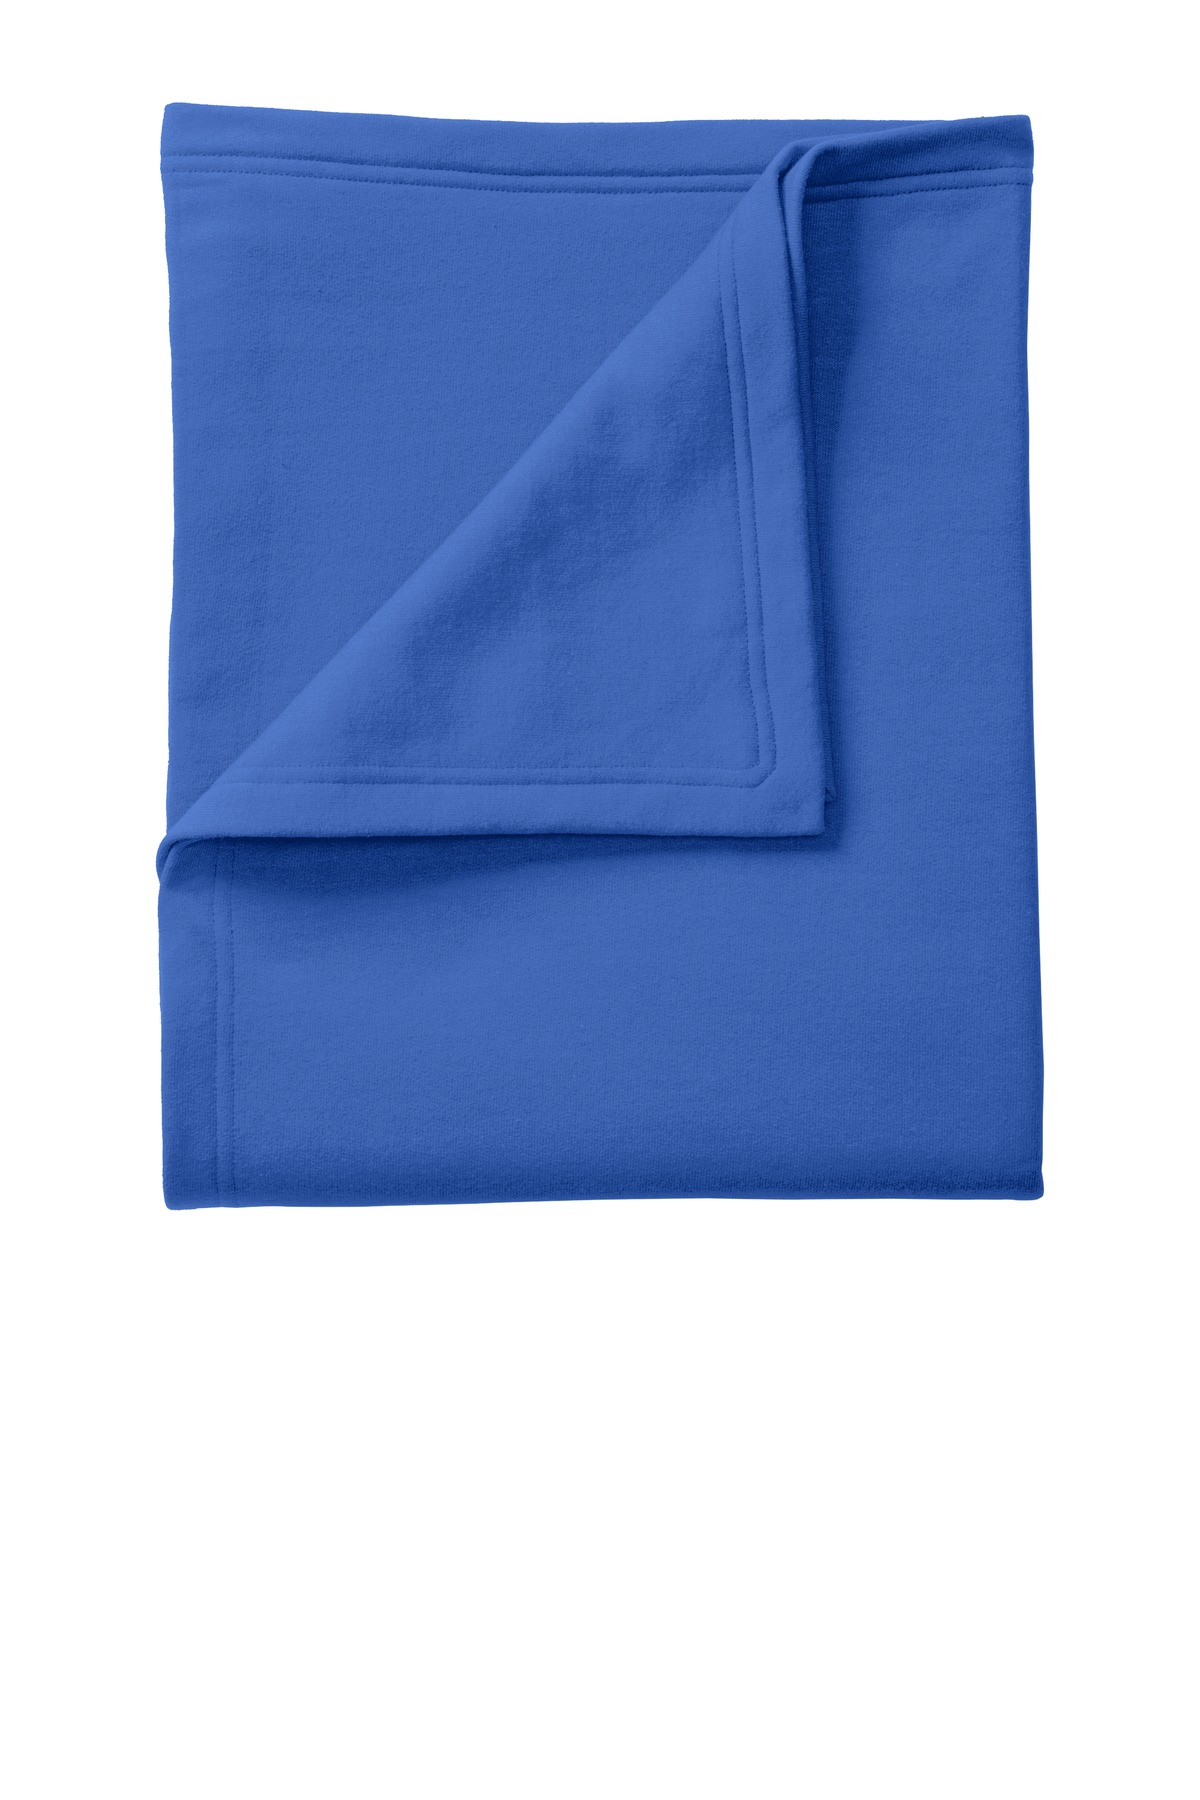 Port & Company ®  Core Fleece Sweatshirt Blanket. BP78 - Royal